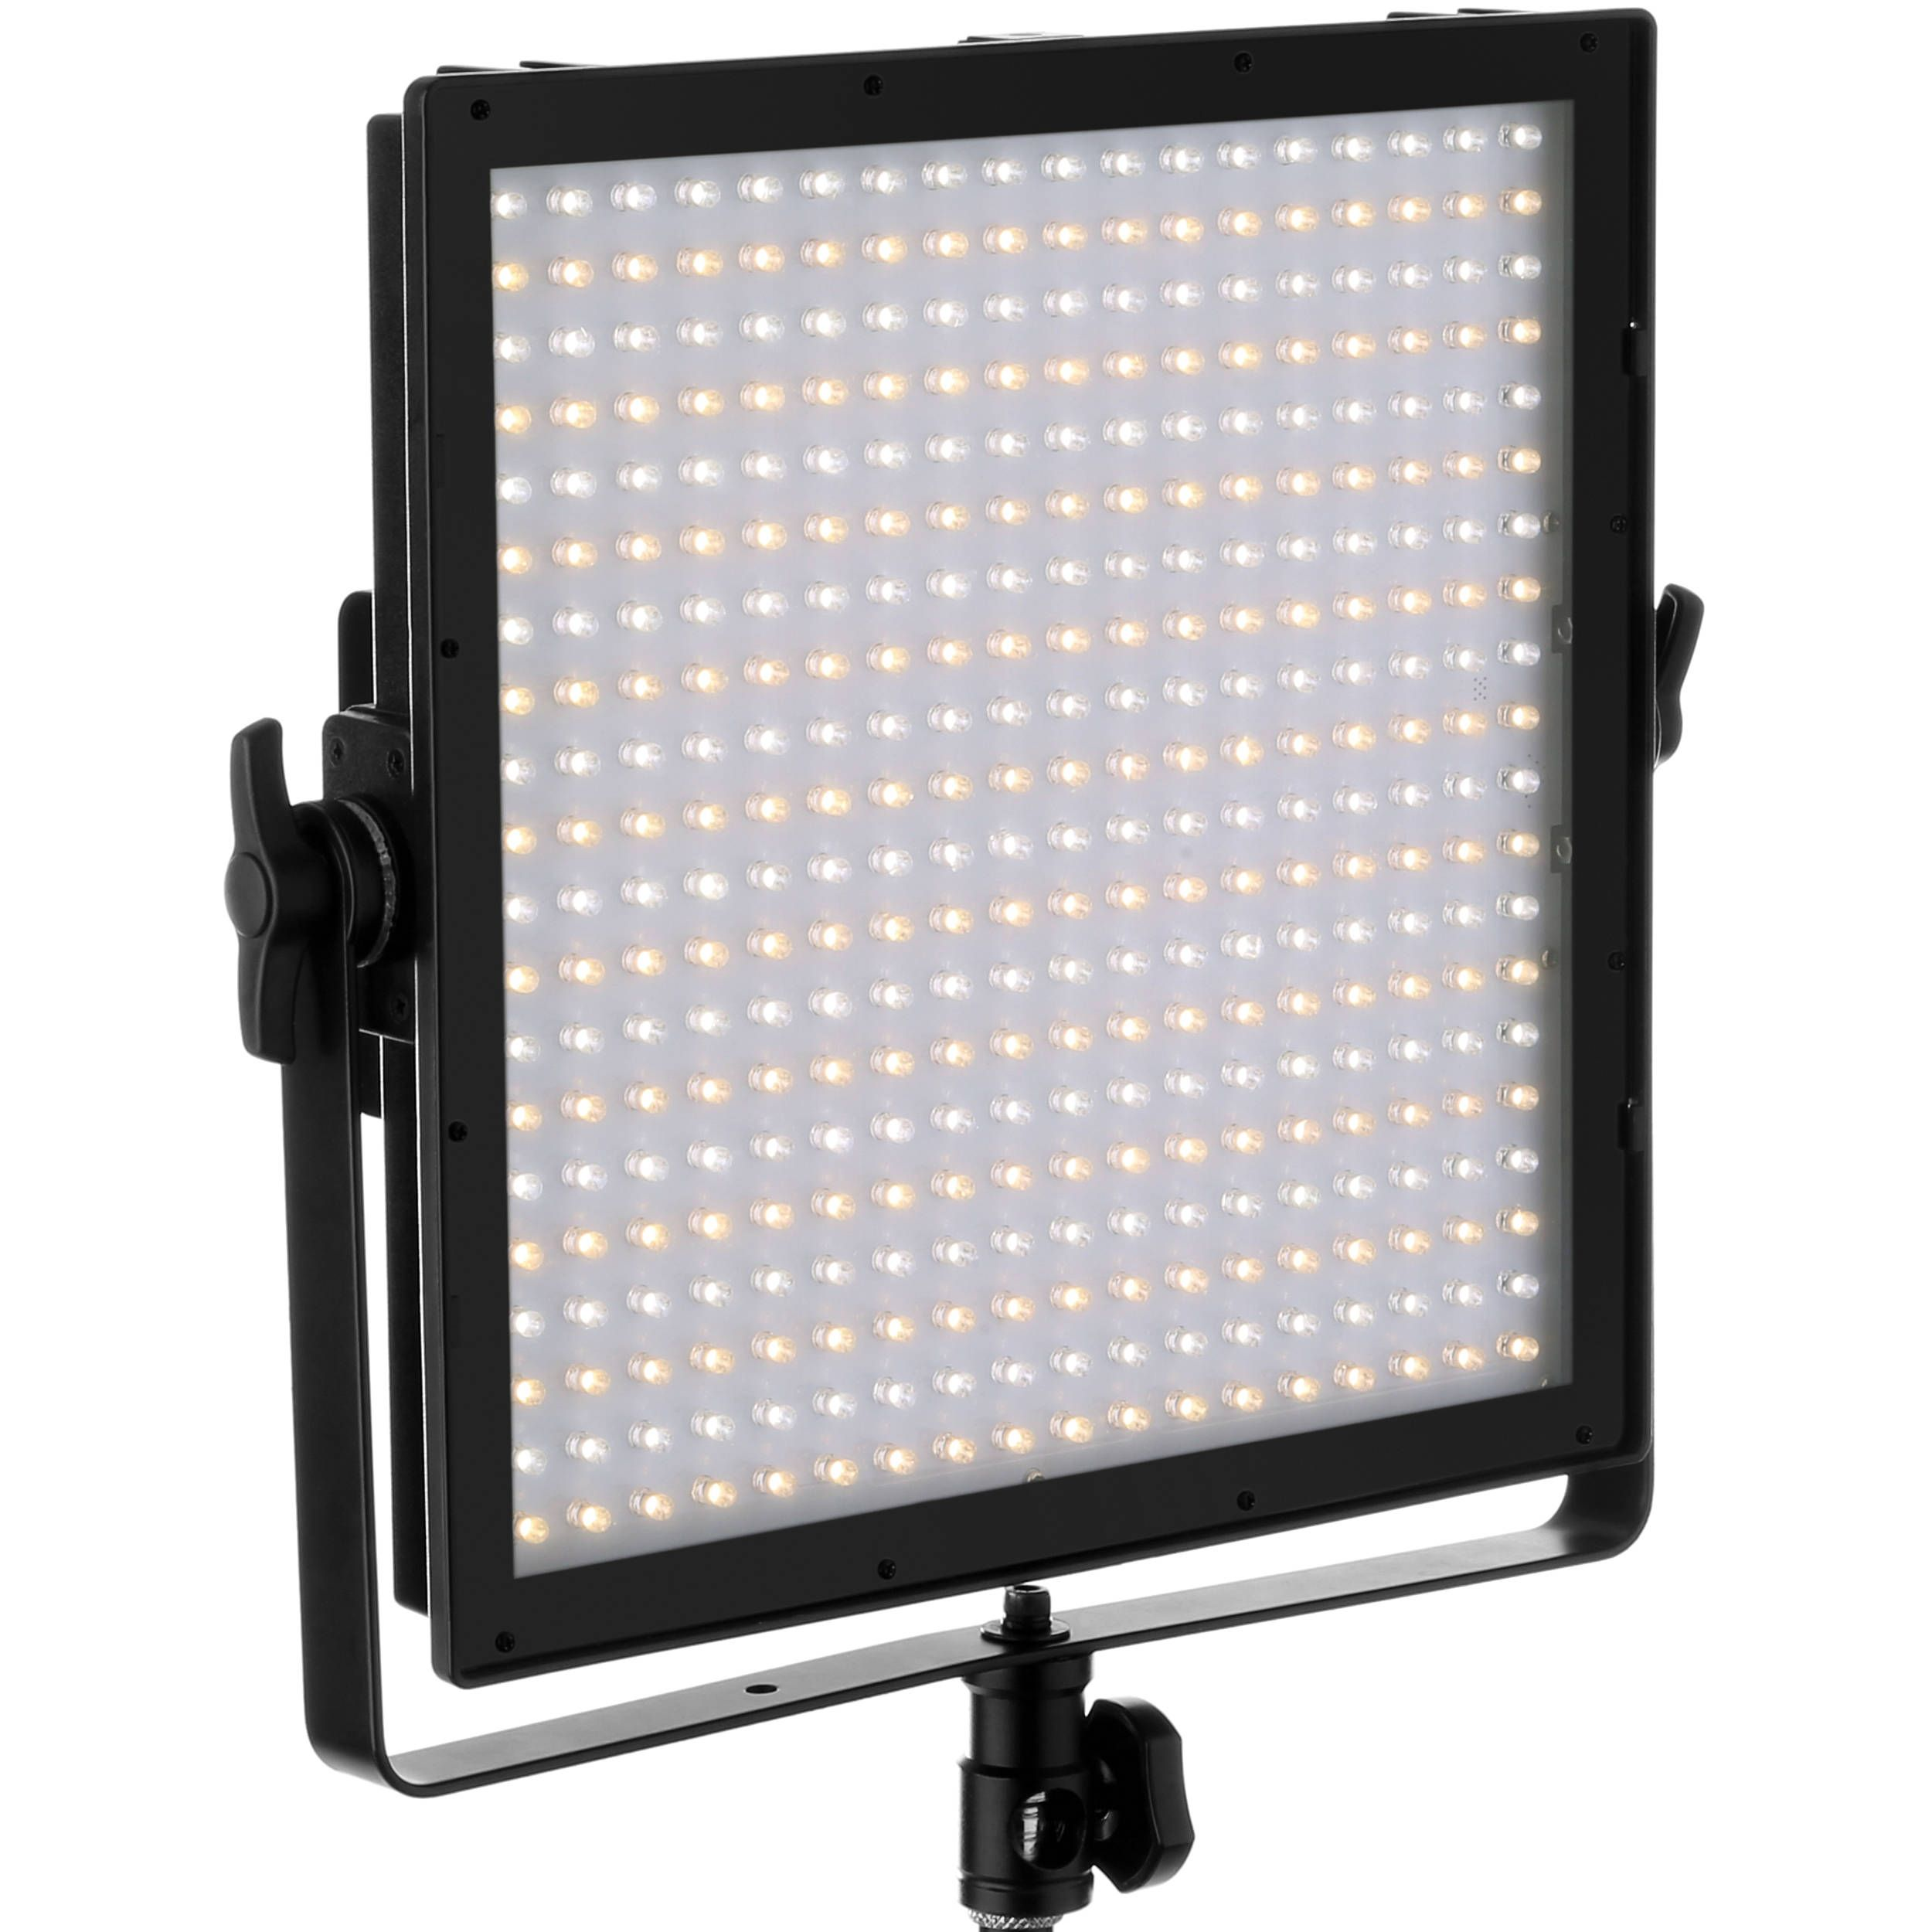 Cheap light studio Buy Quality photography lighting directly from China led photography light Suppliers 360 Daylight LED Photography Light Studio Panel ...  sc 1 st  Pinterest & Recommended by Claire- Genaray SpectroLED Essential 360 Bi-Color ... azcodes.com